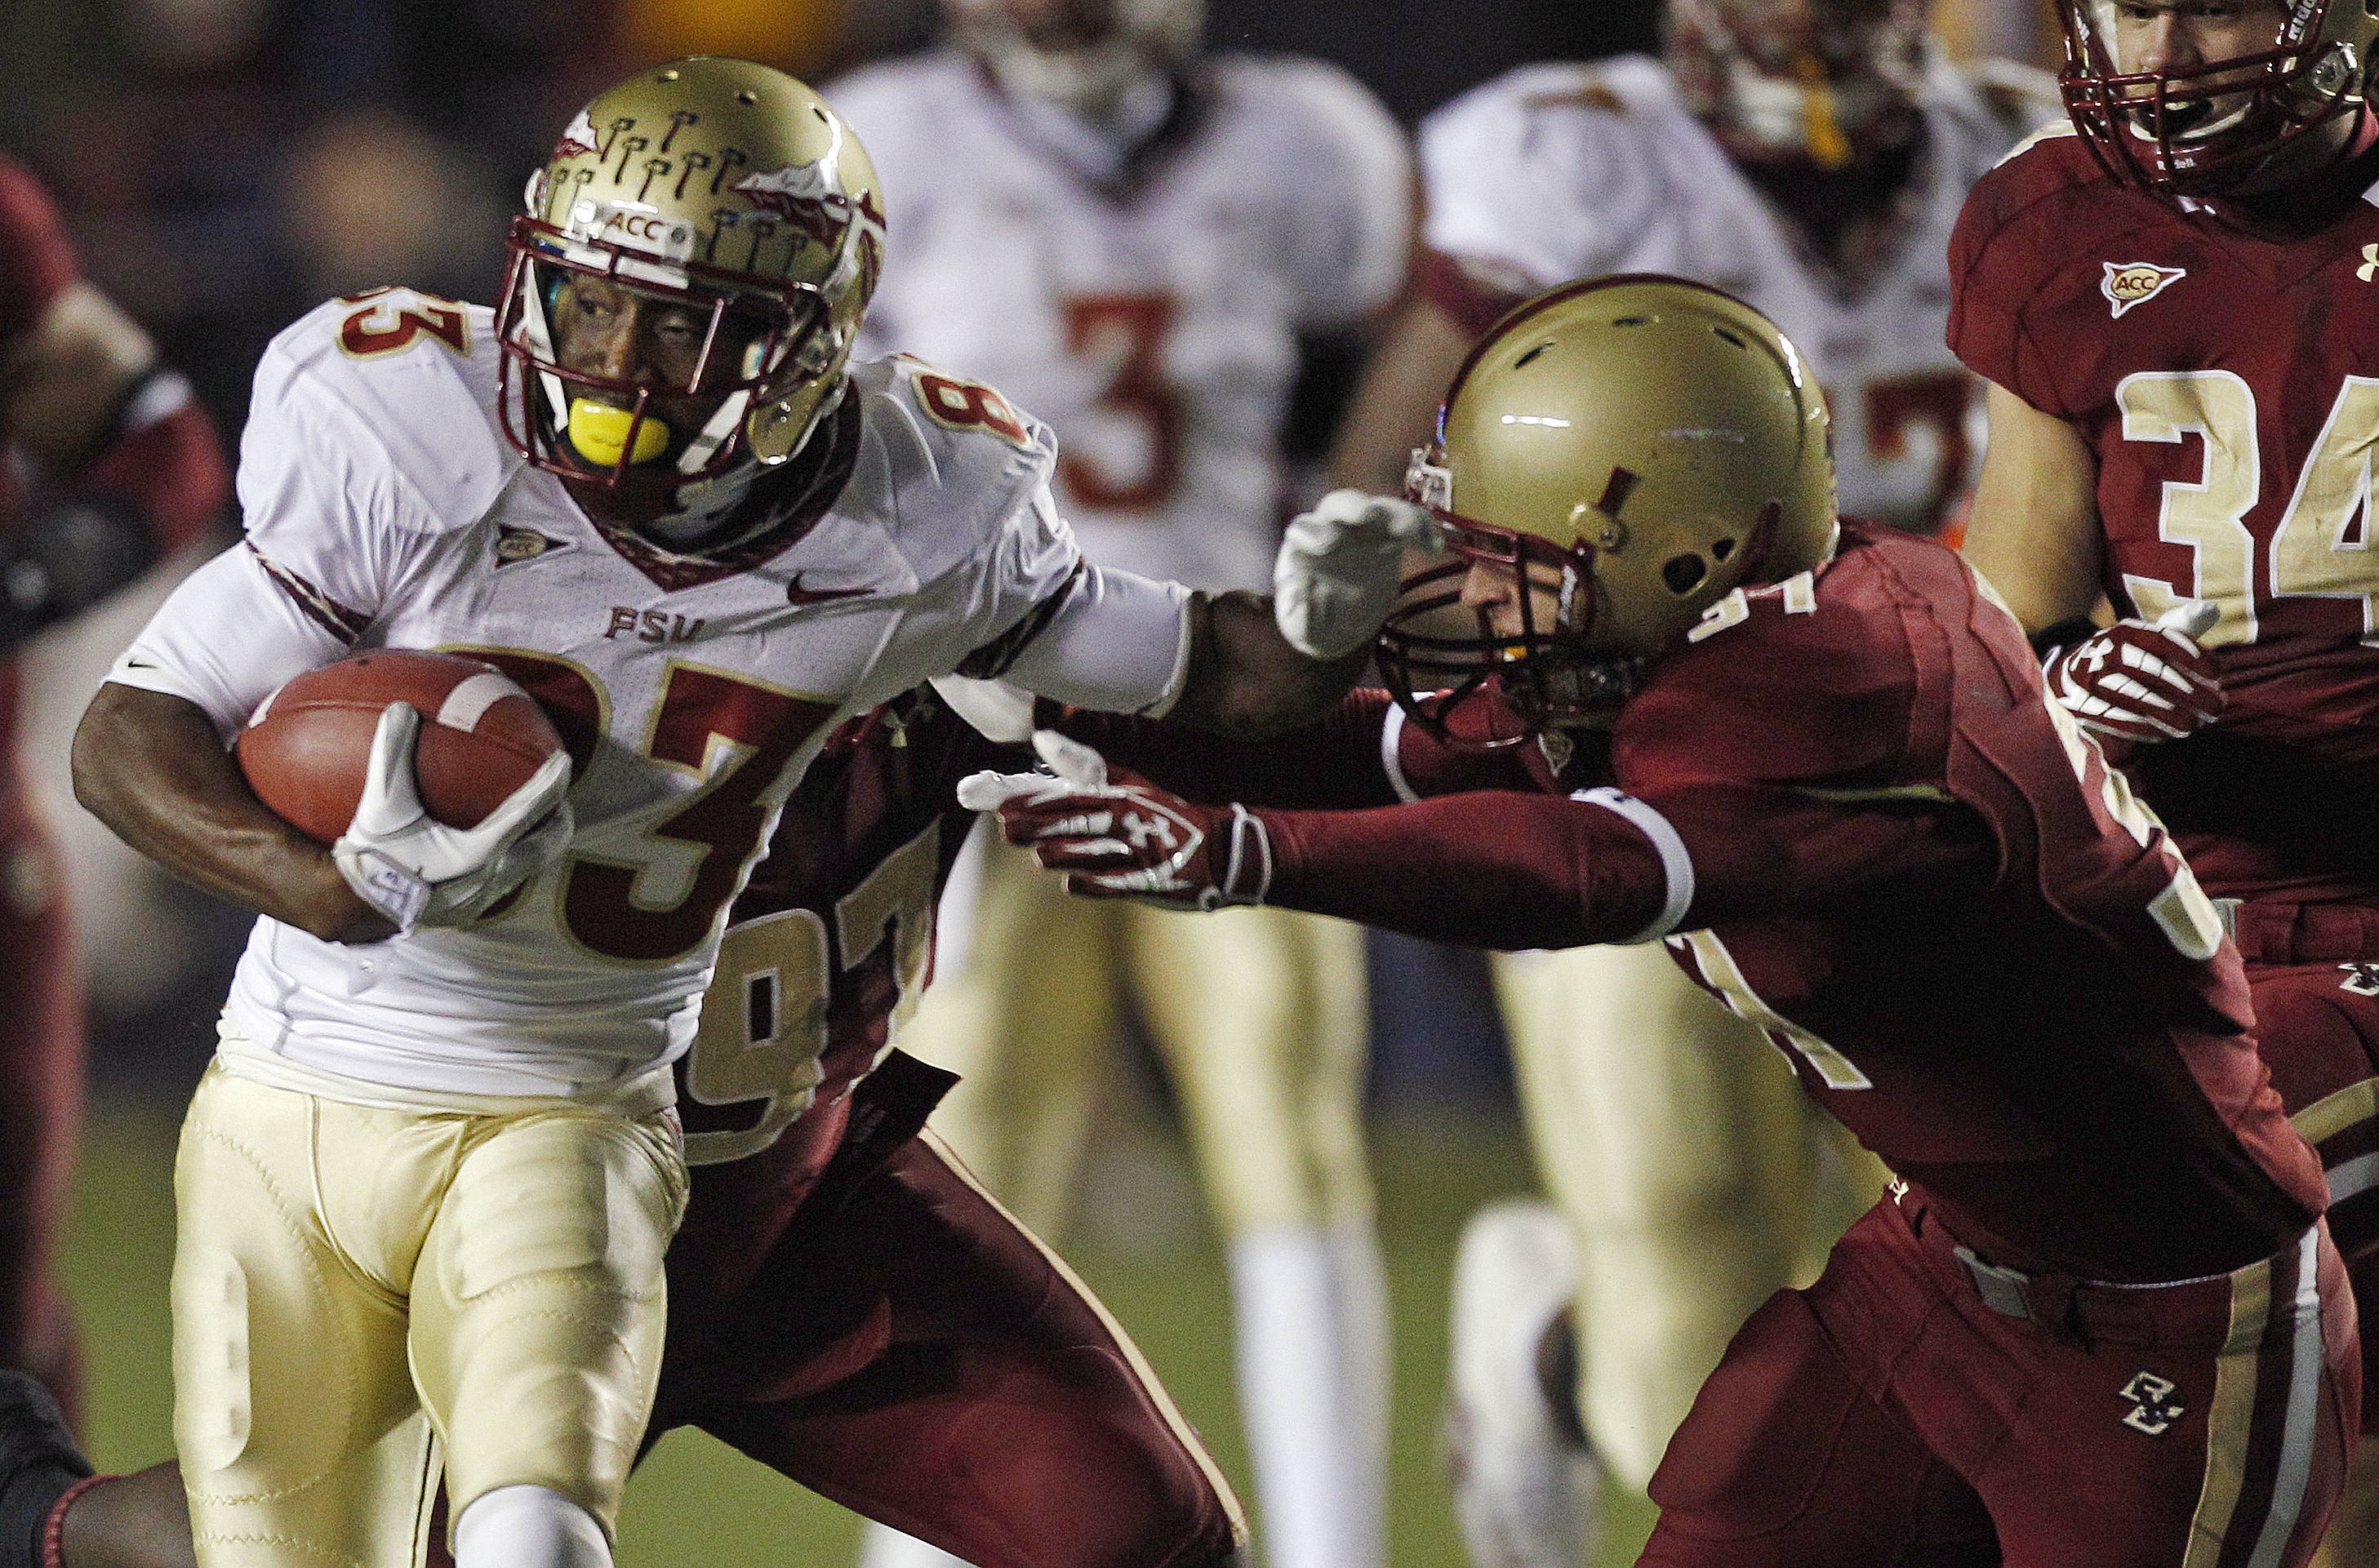 Florida State wide receiver Bert Reed, left, pushes off Boston College defensive back Hampton Hughes, right, during the first half. (AP Photo/Charles Krupa)